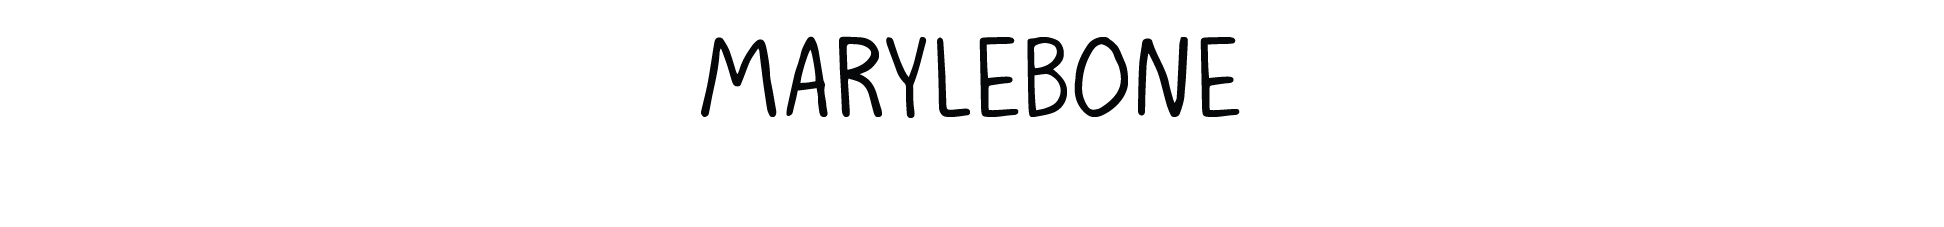 MARYLEBONE_illustration_TYPE2.png